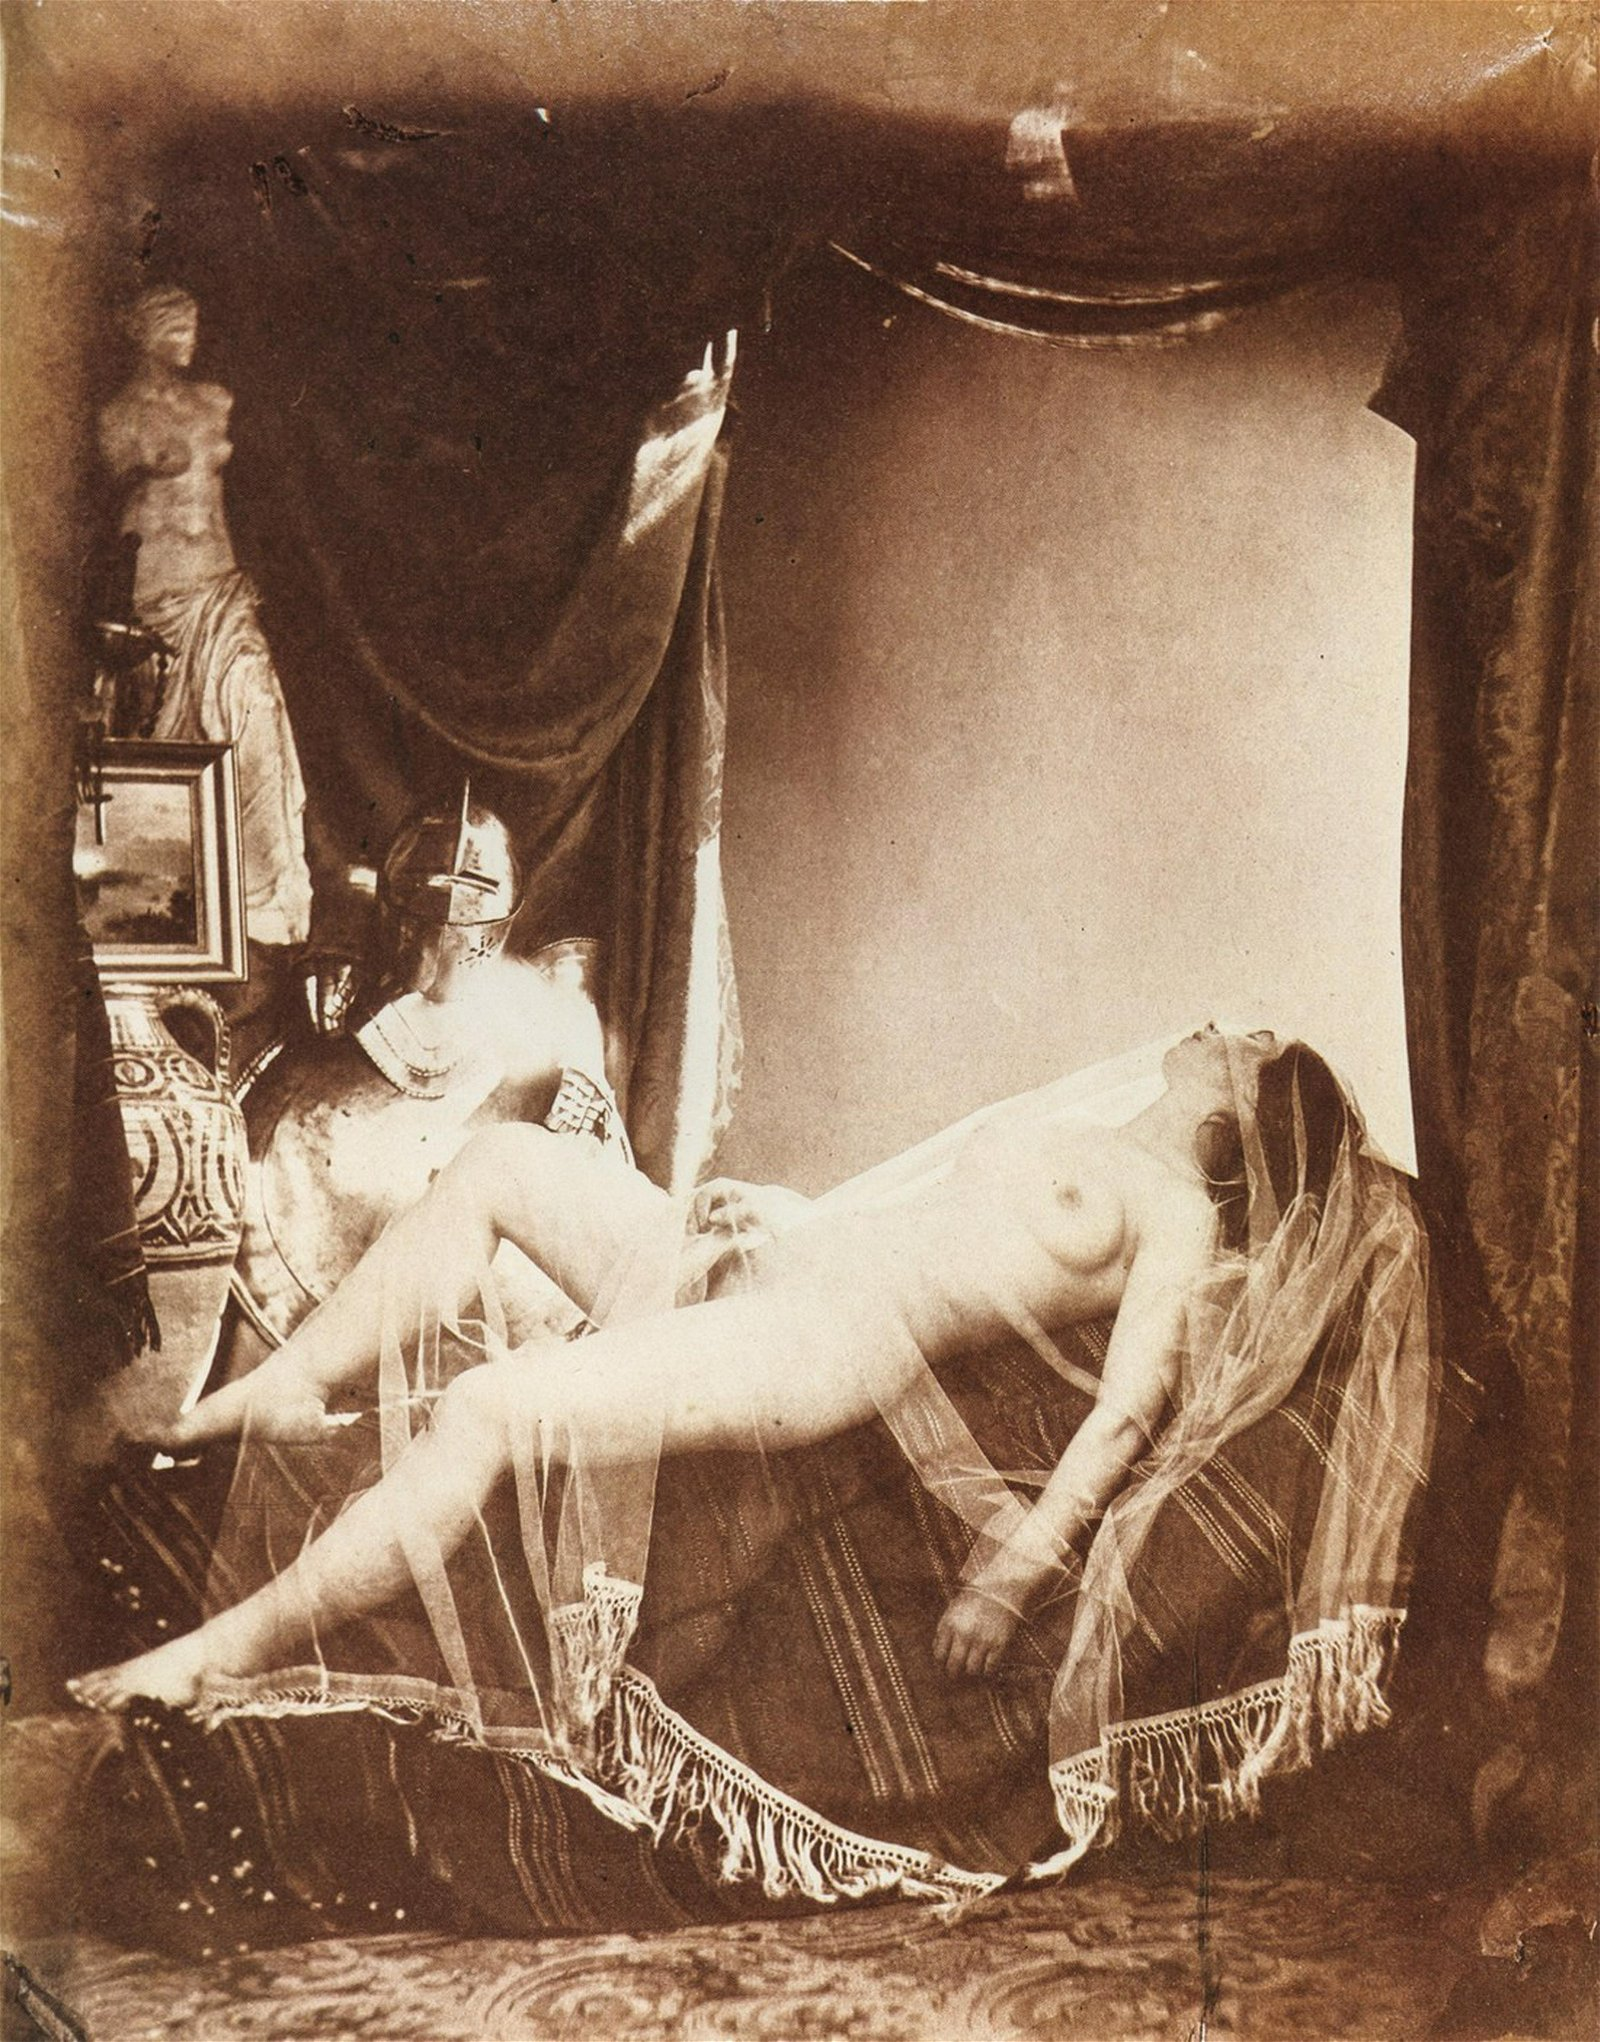 BRAQUEHAIS - Veiled Nude With Suit of Armor, 1854